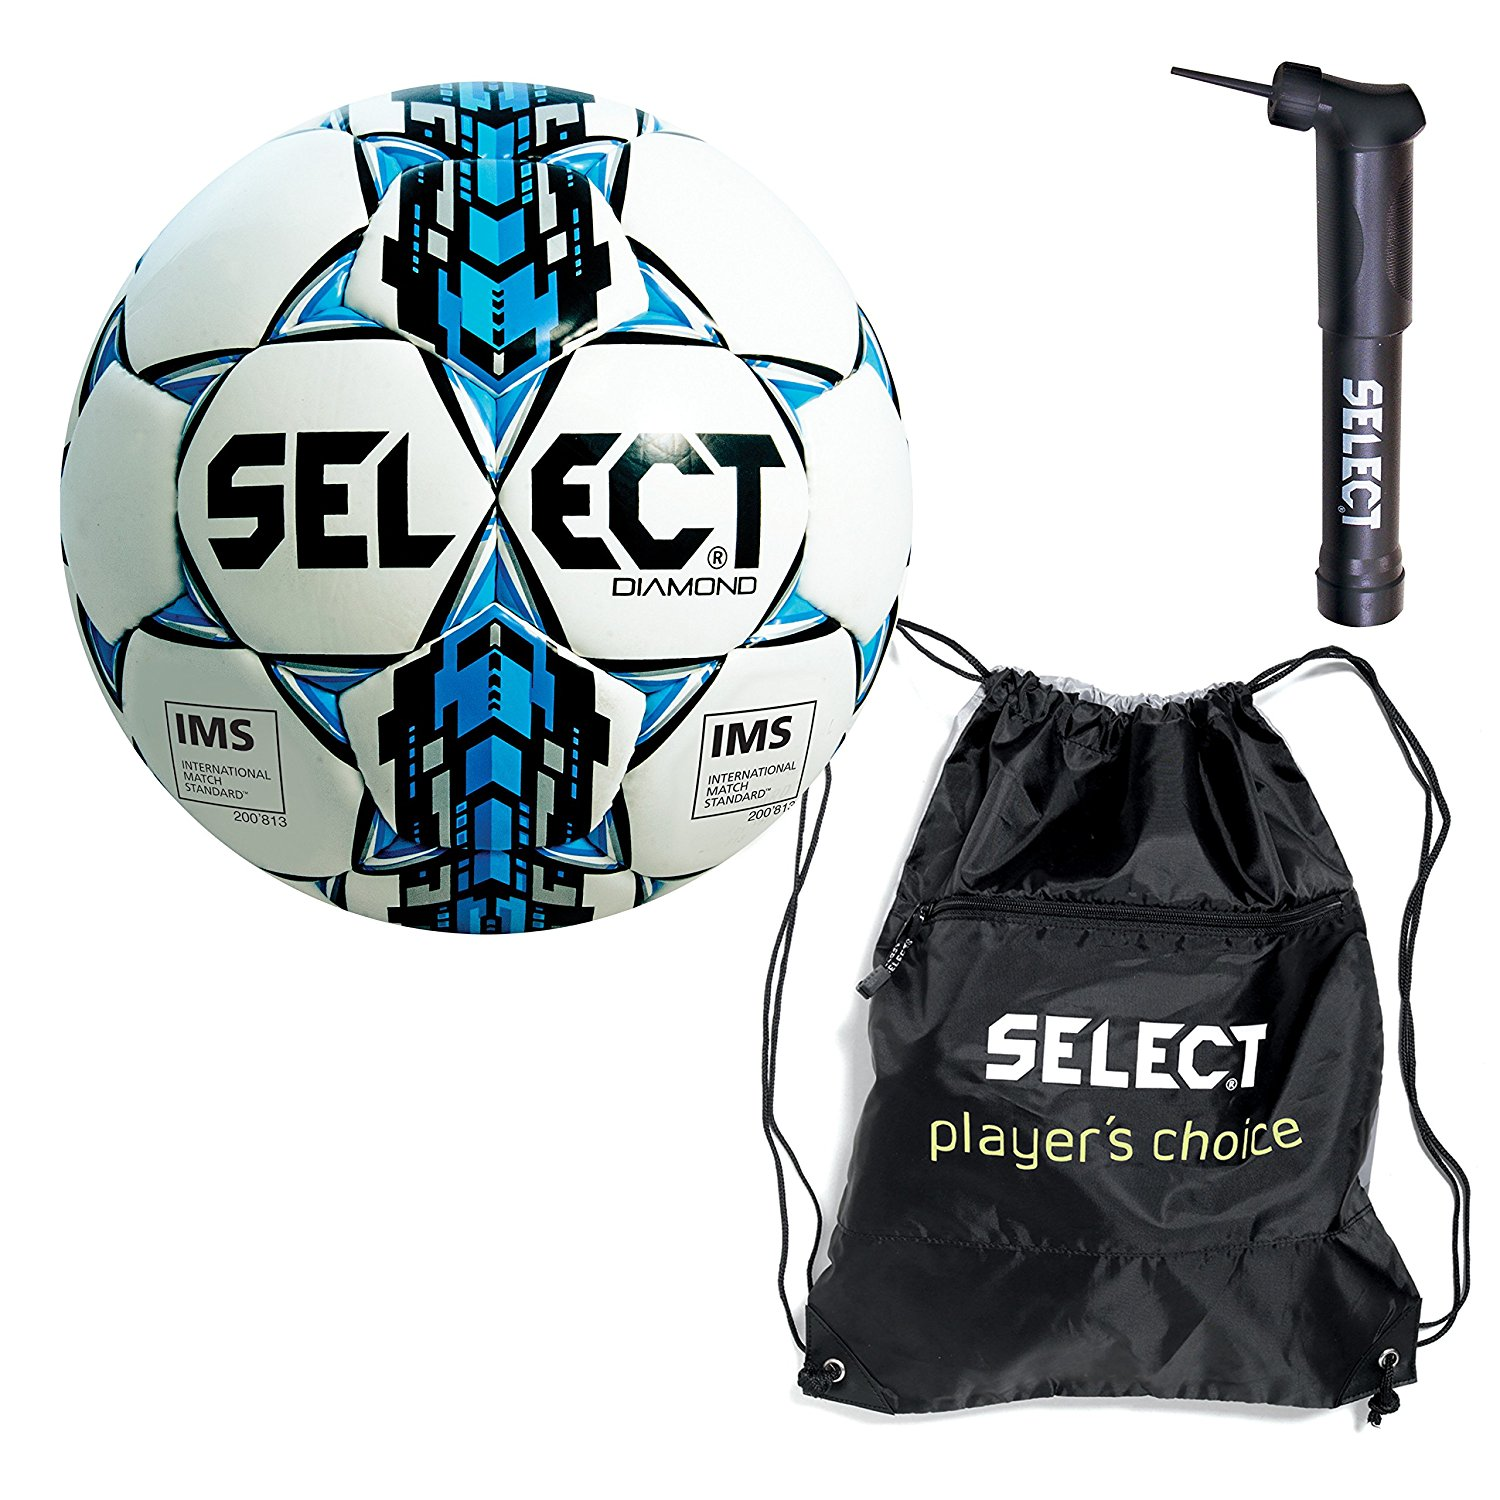 Select Diamond ball pack - 1 x soccer ball with sack pack & soccer ball hand pump(White/Blue, Size 5)